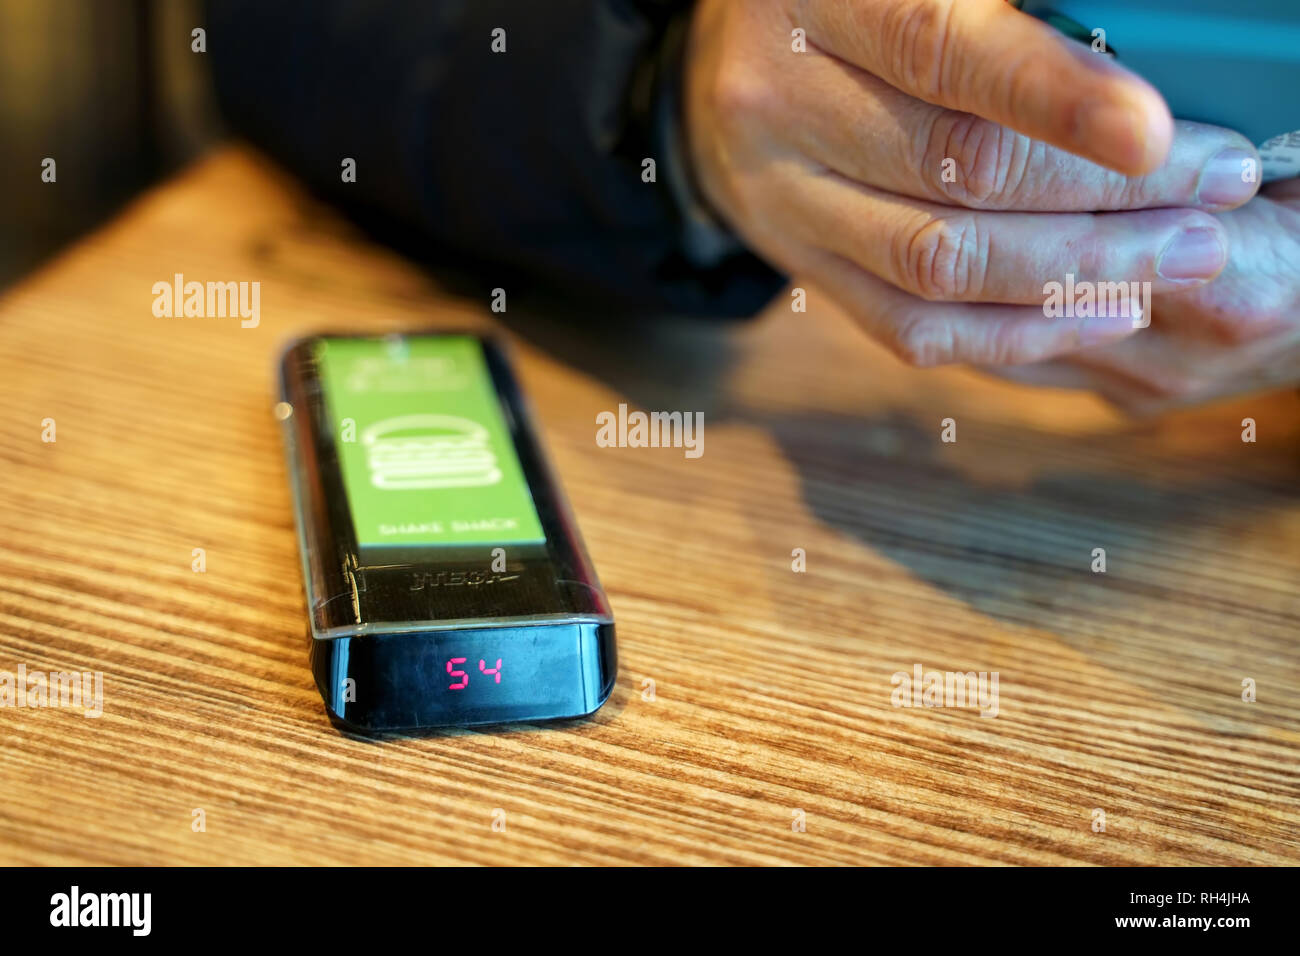 West Hartford, CT USA. Dec 2018. Surfing hands of a restaurant customer waiting for the electronic guest pager to notify of an order status. - Stock Image